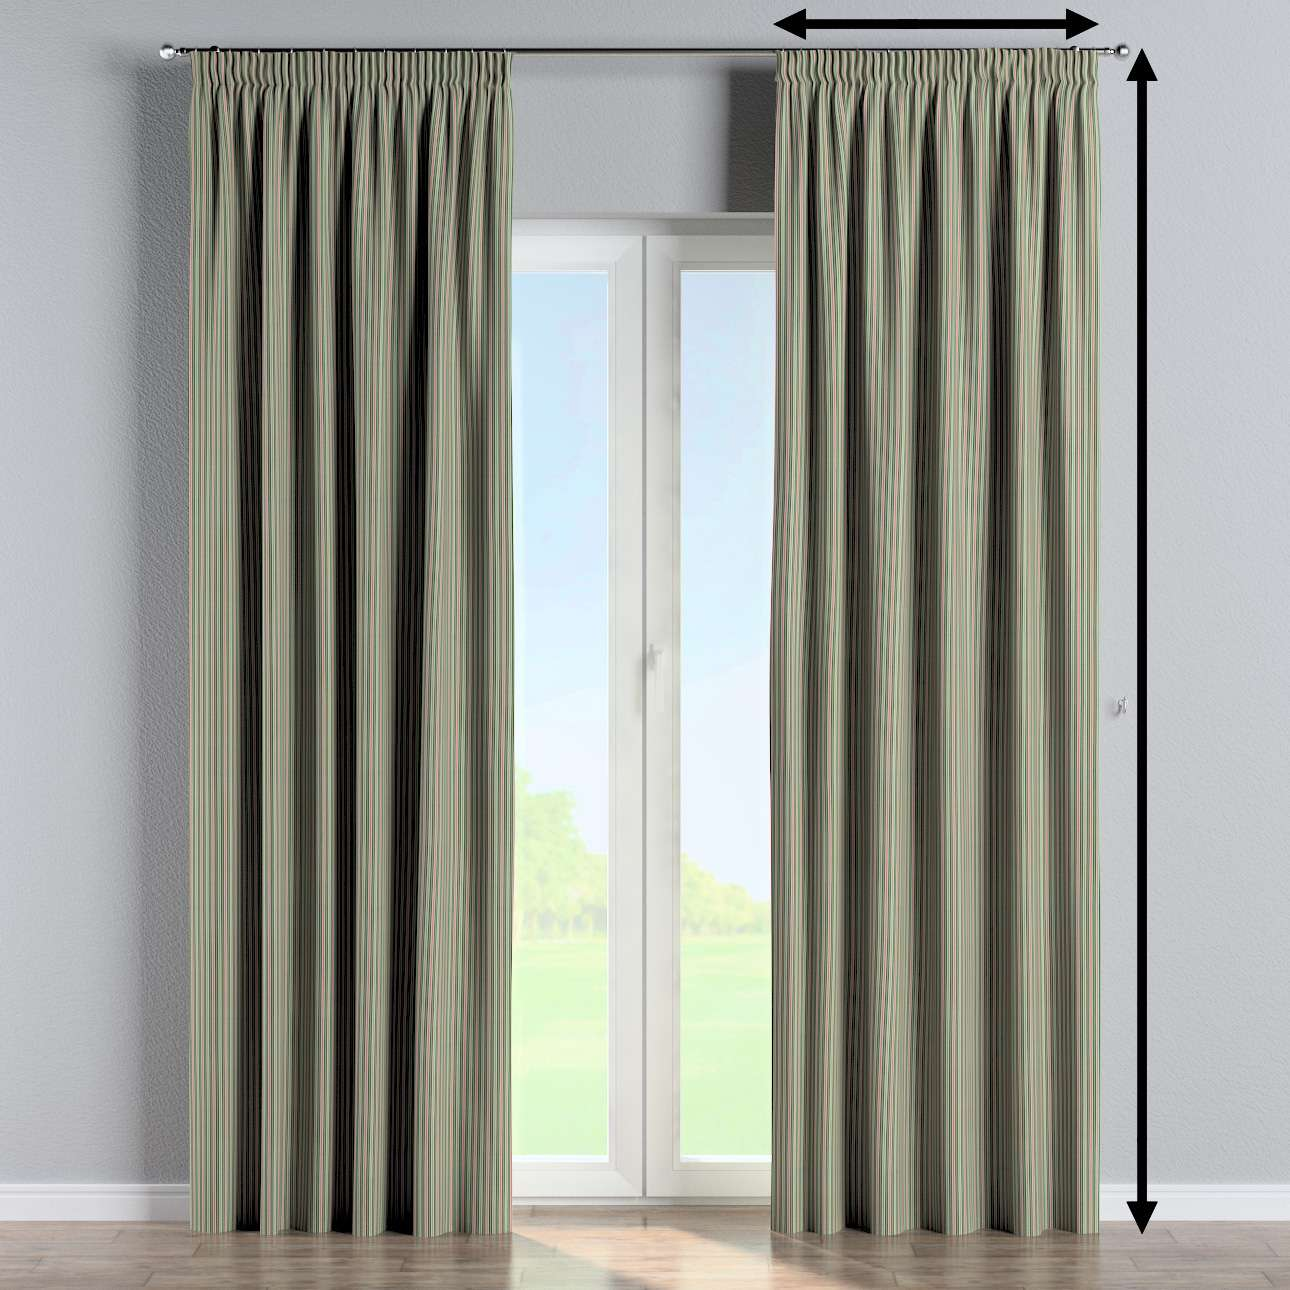 Pencil pleat curtain in collection Londres, fabric: 143-42